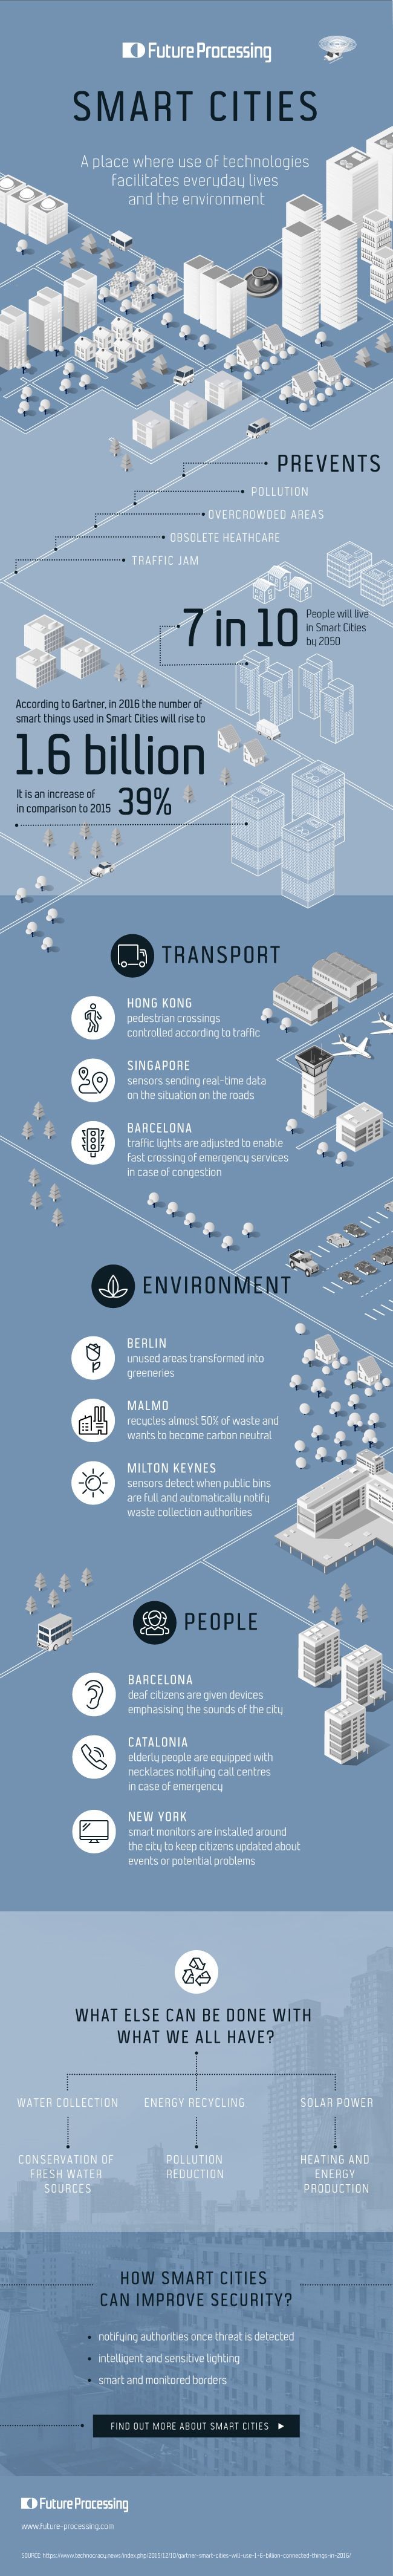 What is a smart city? How will smart technologies improve our urban life? Today's graphic has those answers and more.